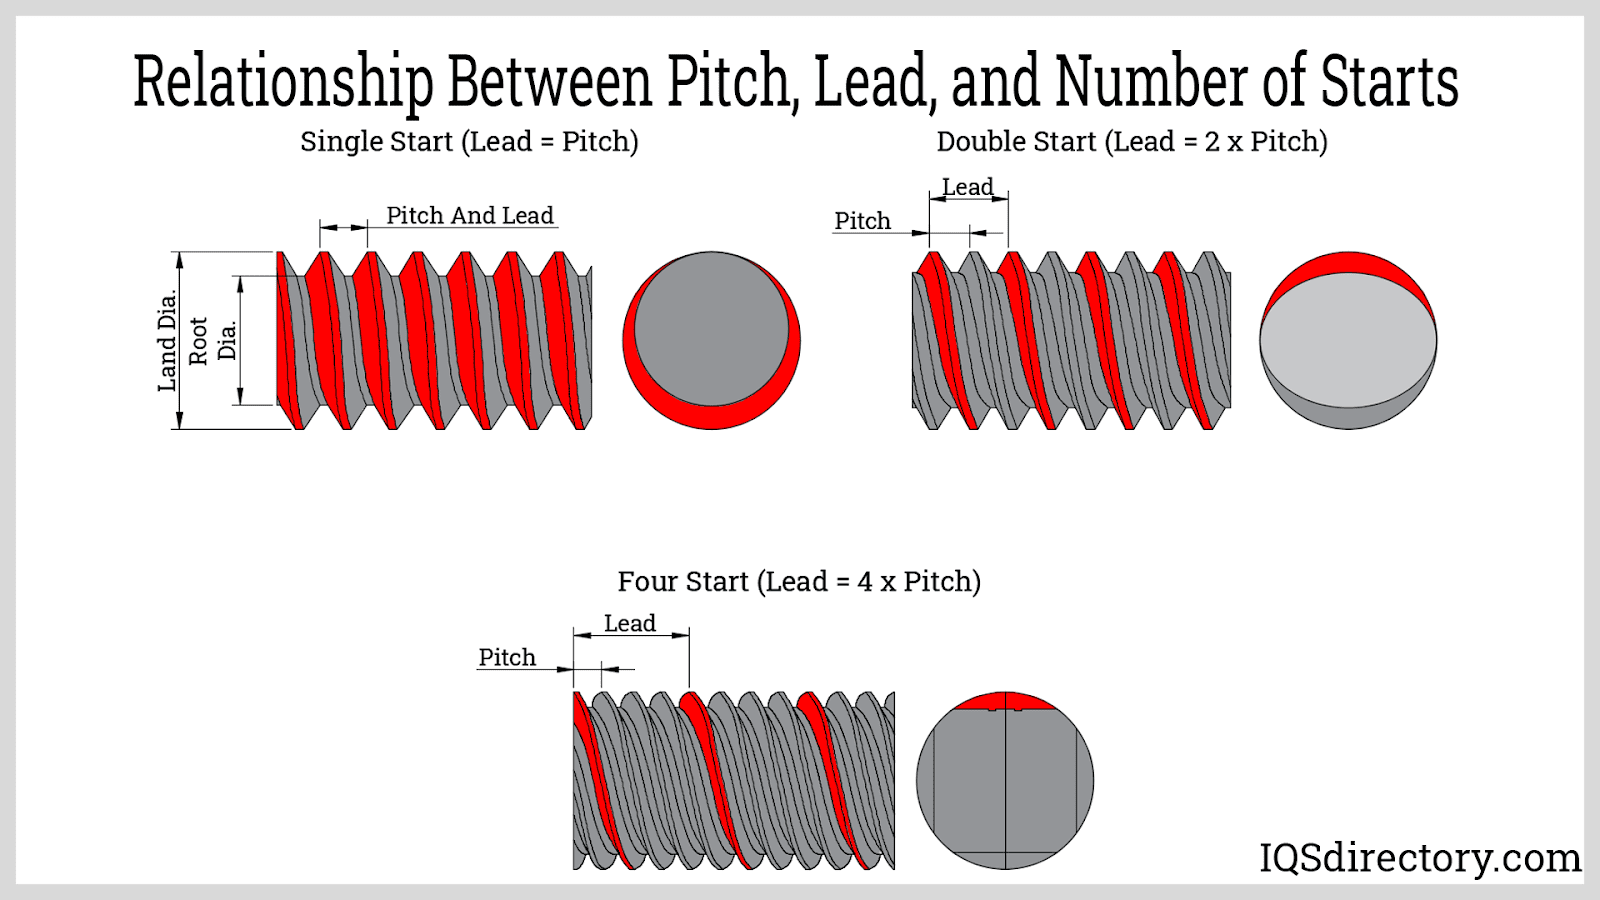 Relationship Between Pitch, Lead, and Number of Starts